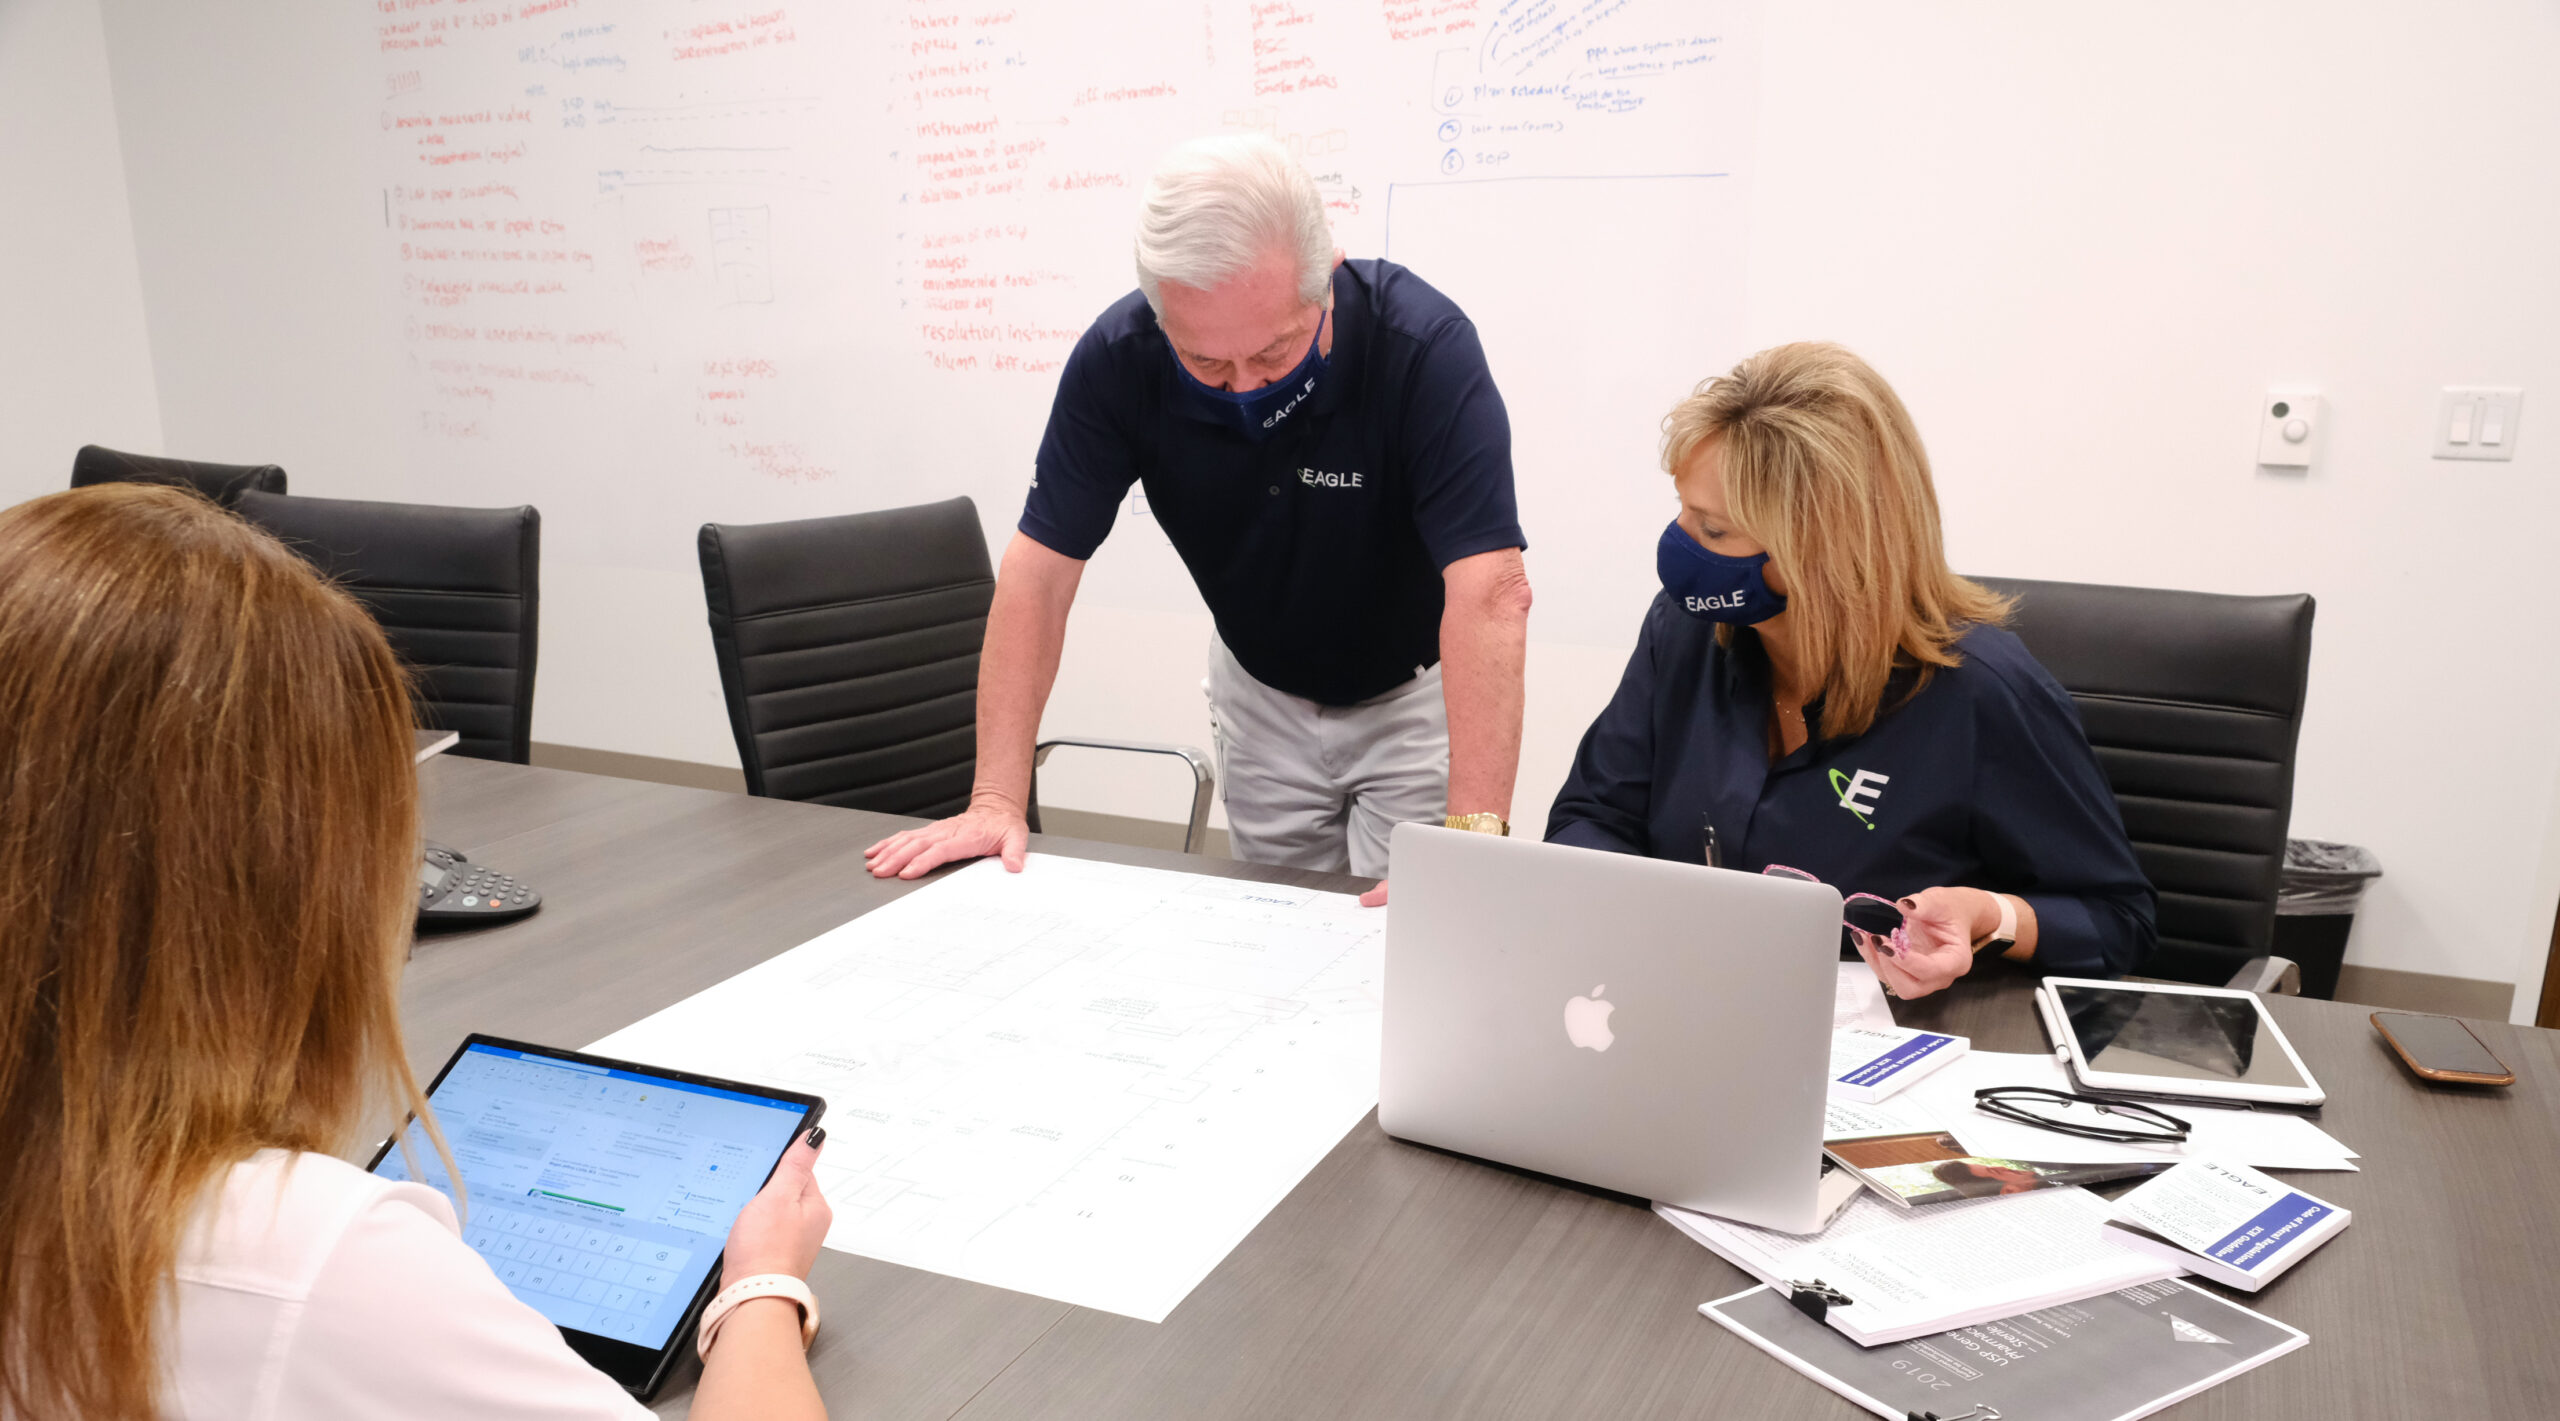 3 Eagle consultants at a table with a blueprint and other paperwork and a computer. One consultant looking at a tablet.